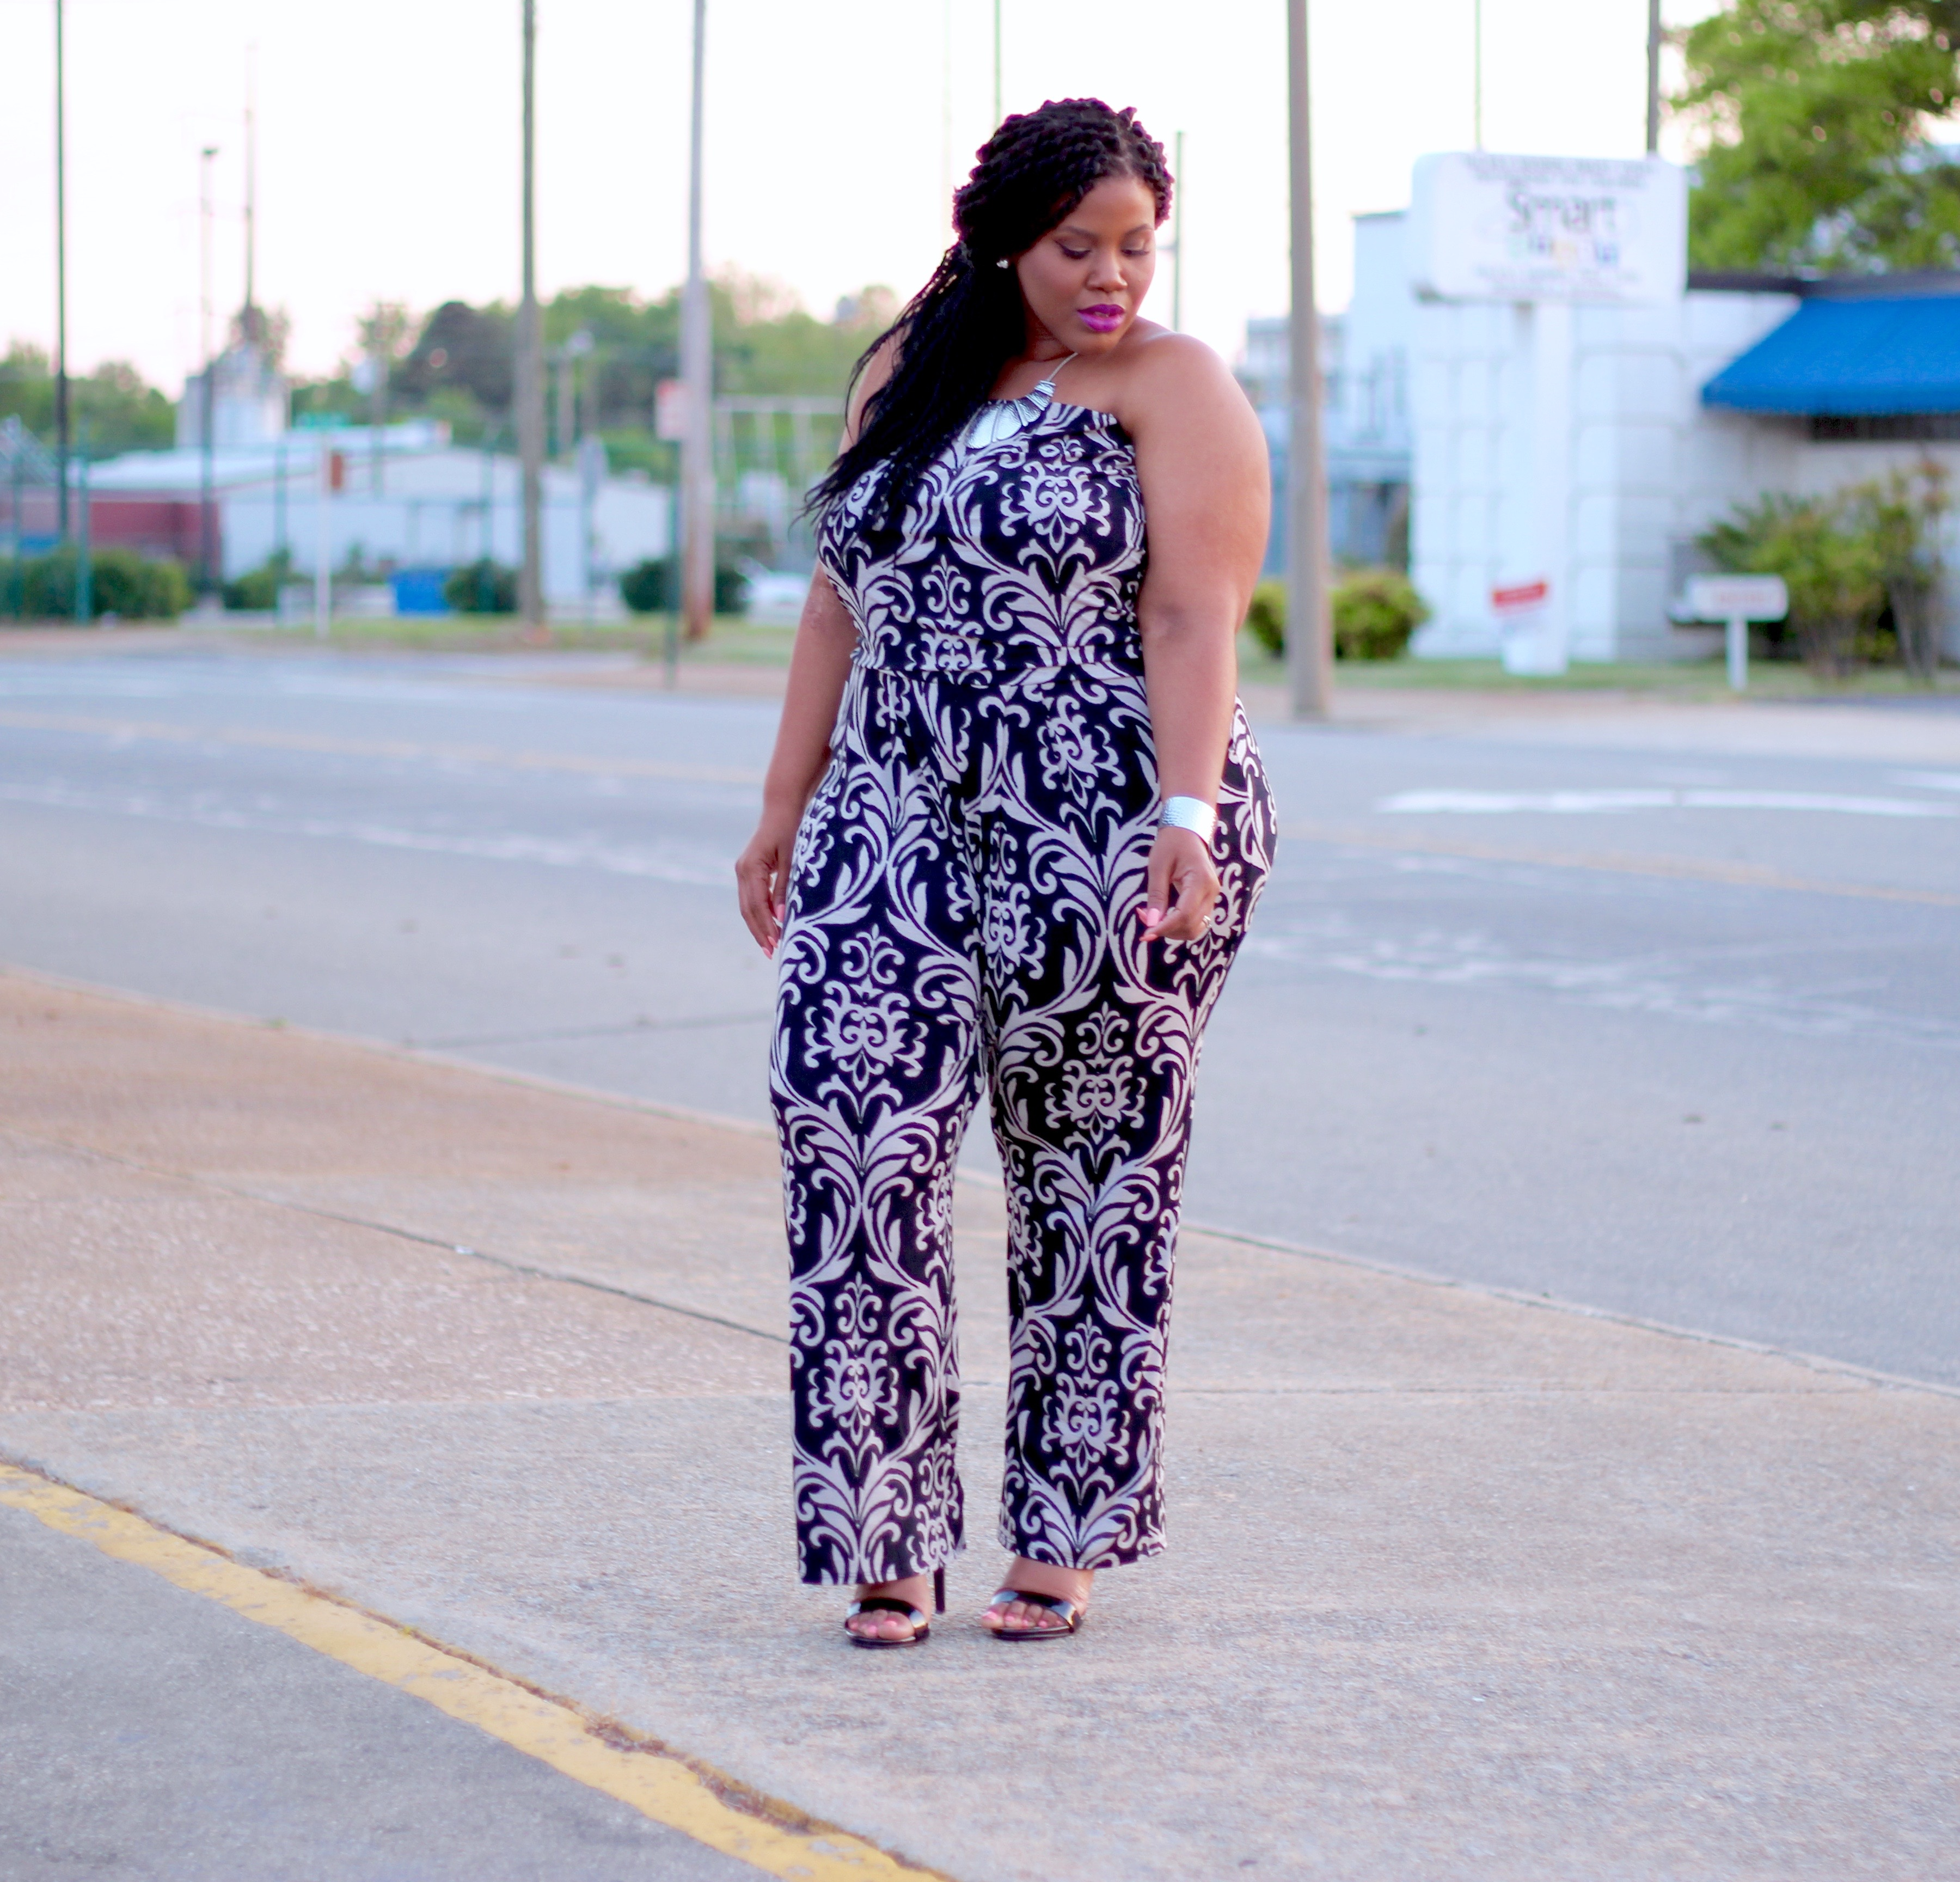 cf998ab286 Plus Size Jumpsuit Guide - Naturally Fashionable